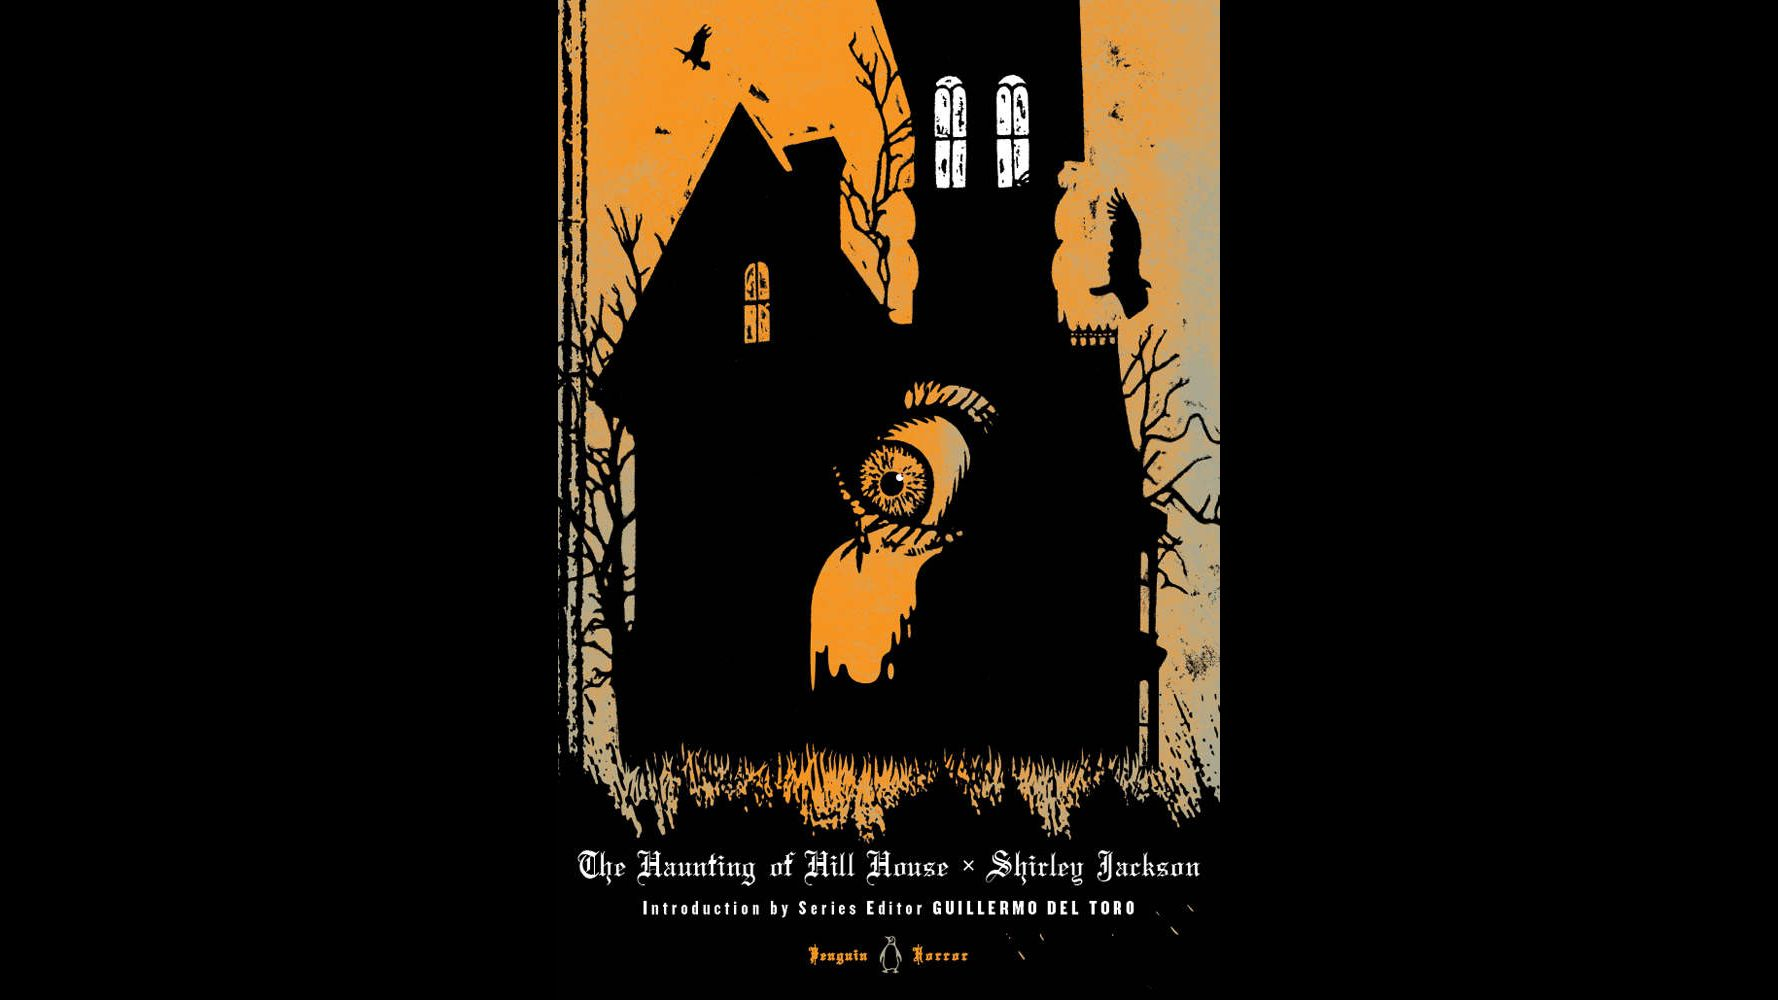 11 Chilling Facts About Shirley Jackson S The Haunting Of Hill House Mental Floss